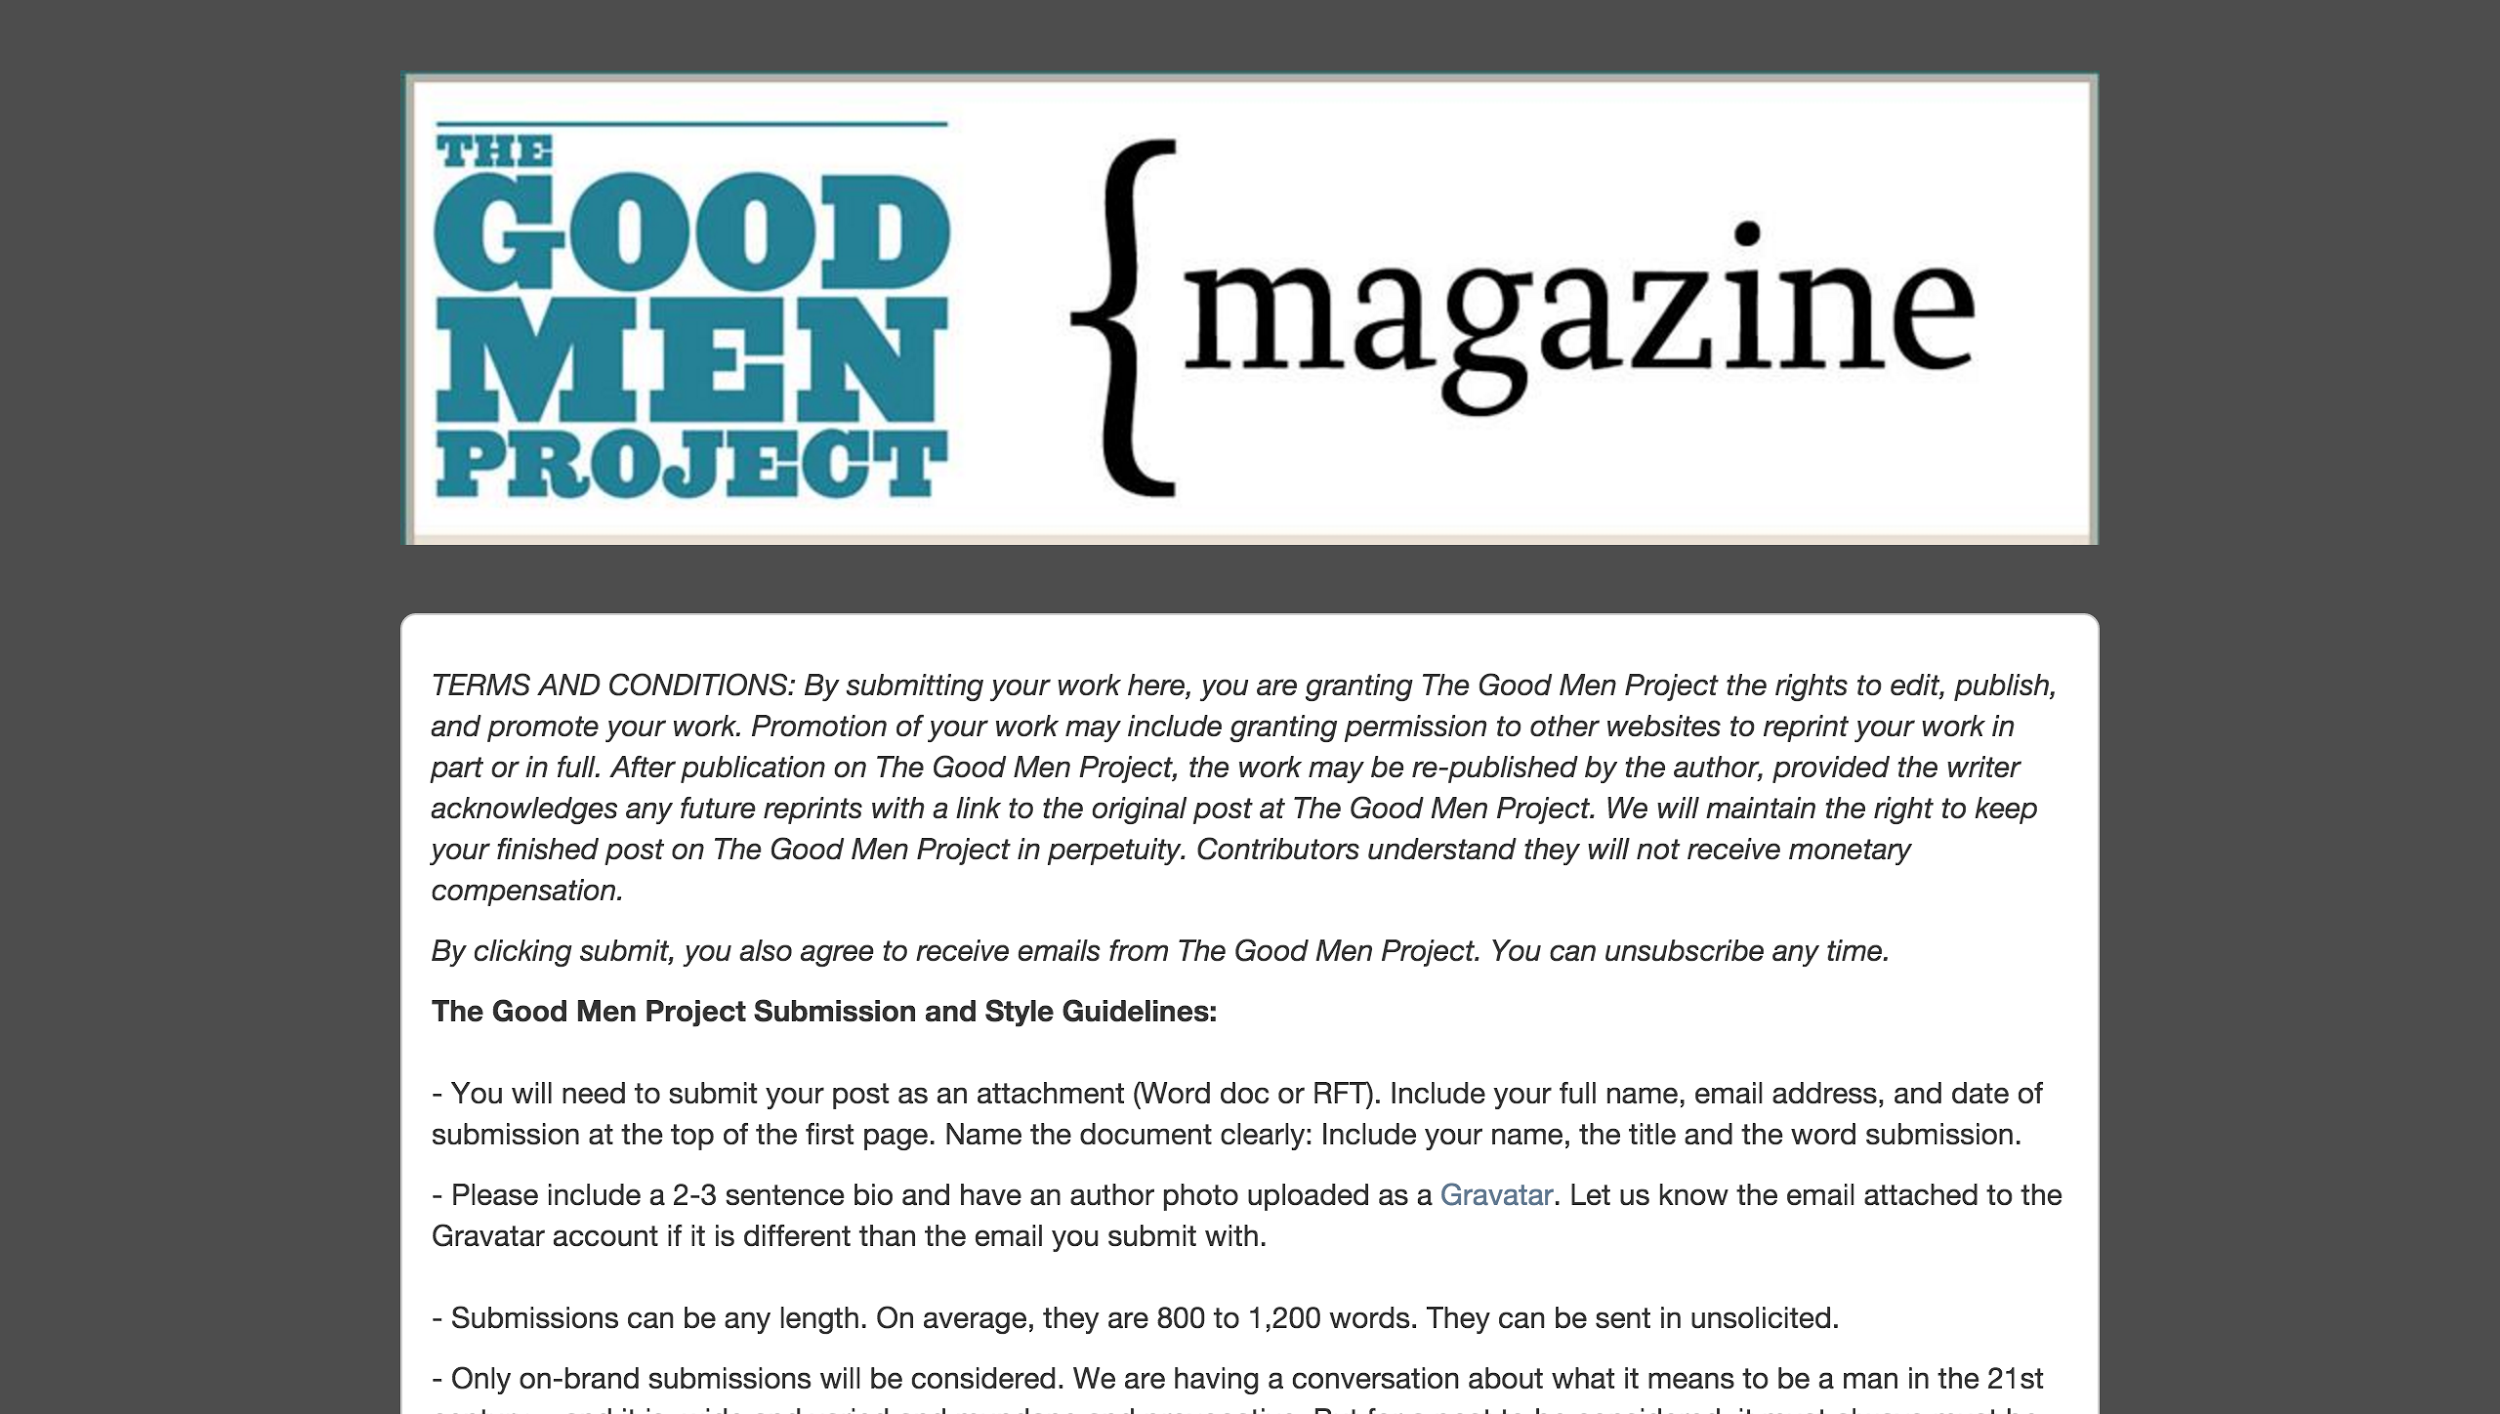 Screenshot of the guidelines for republishing on the good men project magazine